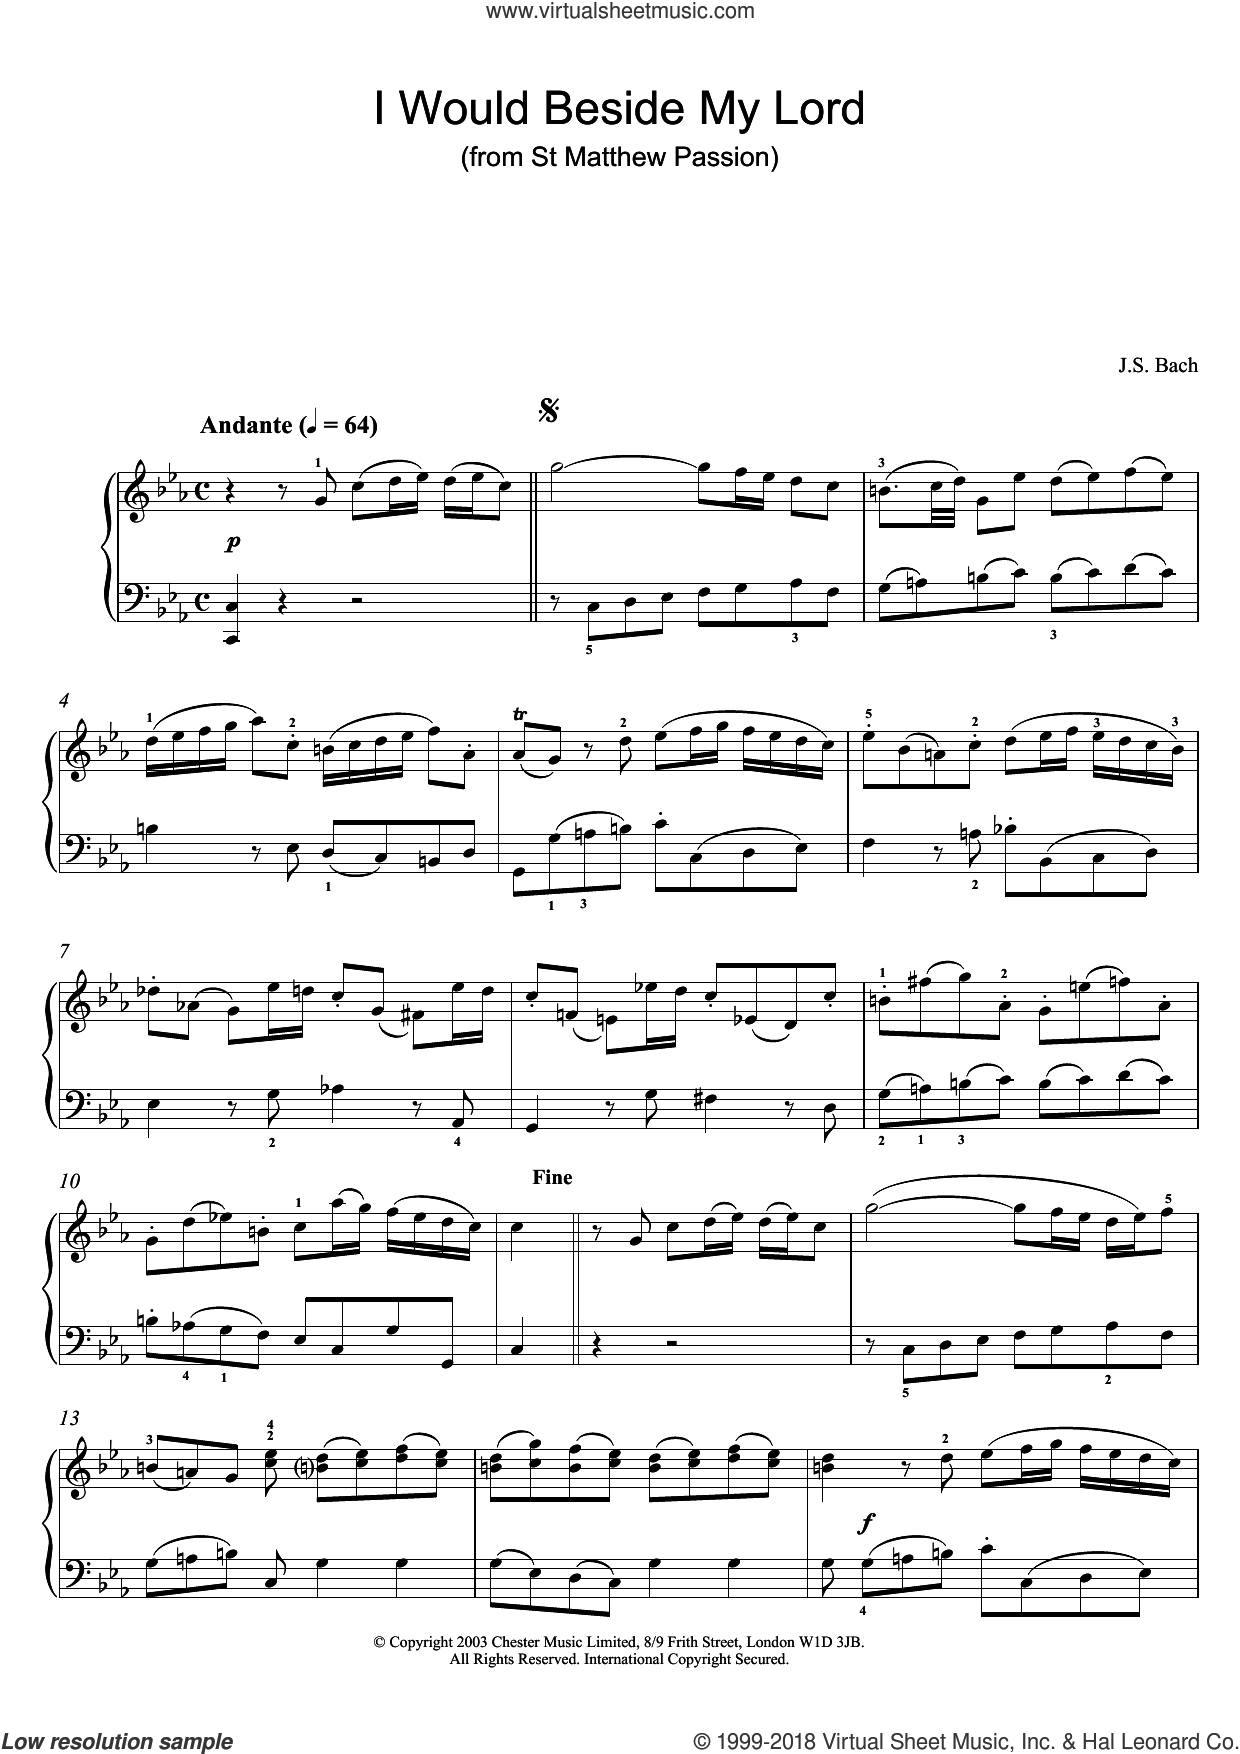 I Would Beside My Lord (from St Matthew Passion) sheet music for piano solo by Johann Sebastian Bach, classical score, intermediate skill level